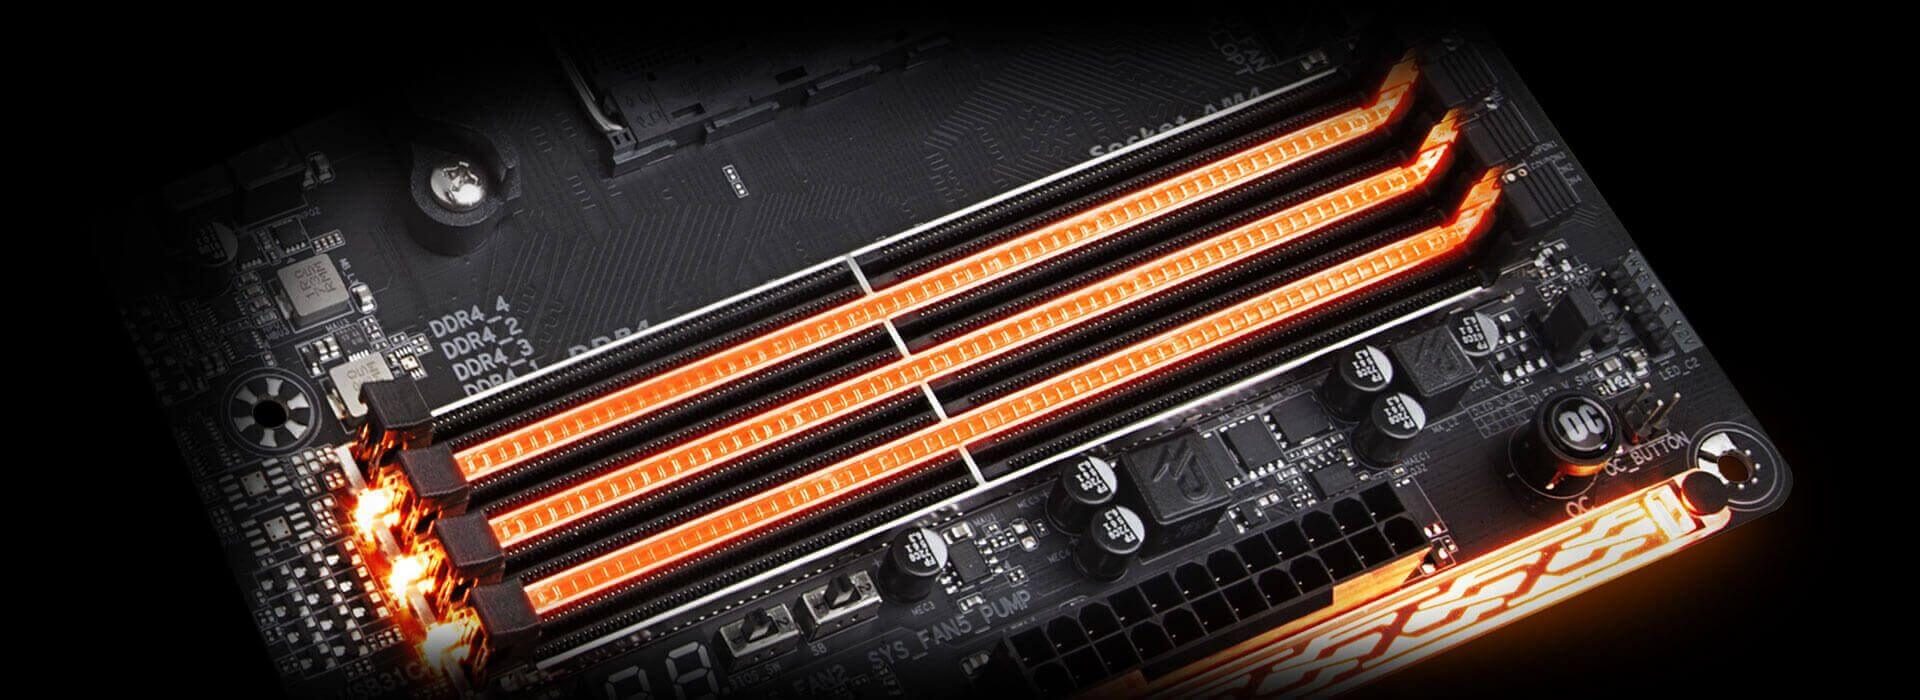 X470 Aorus Gaming 7 Wifi Rev 10 Motherboard Gigabyte Global 2 Speed Fan Wiring Diagram Multi Light Zones Are Equipped With High Brightness Rgb Leds Namely The Memory Armor Audio Pci Express And Swappable Overlay For Accent Led